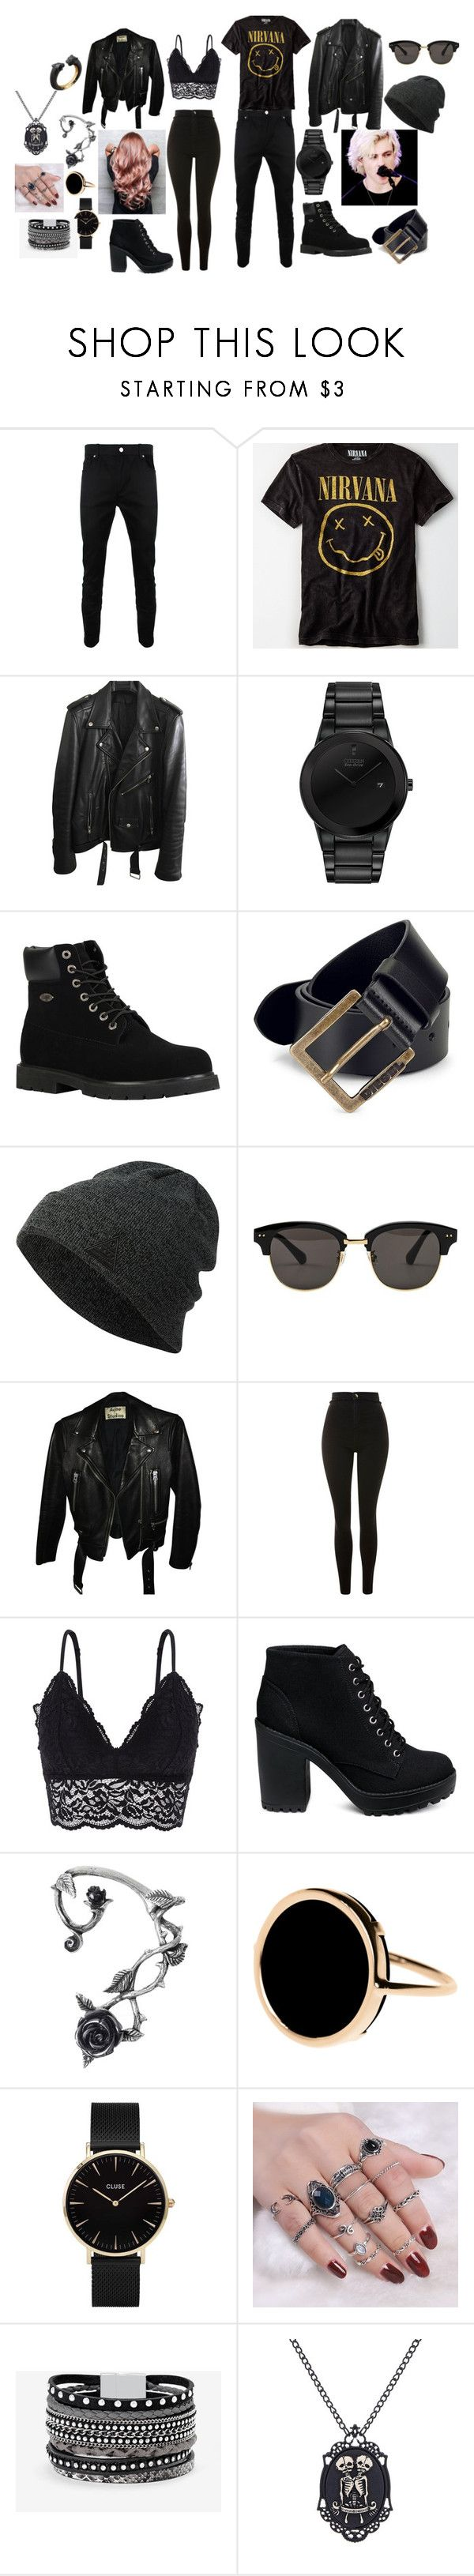 . by patriivasca on Polyvore featuring Oysho, Acne Studios, Topshop, Ginette NY, CLUSE, White House Black Market, BLK DNM, Moschino, Gentle Monster and Citizen